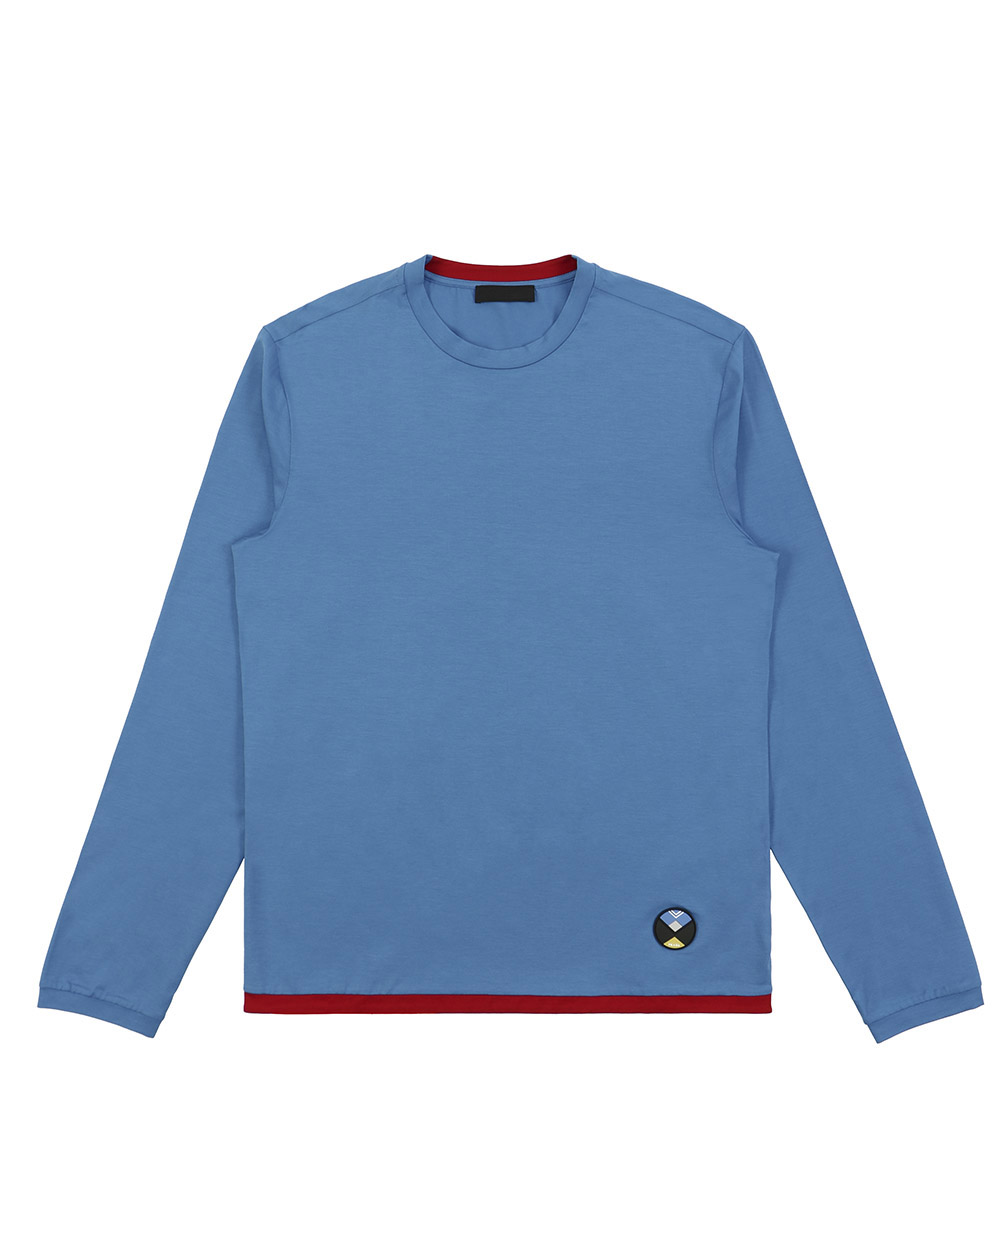 Round Neck Long Sleeves T-Shirt